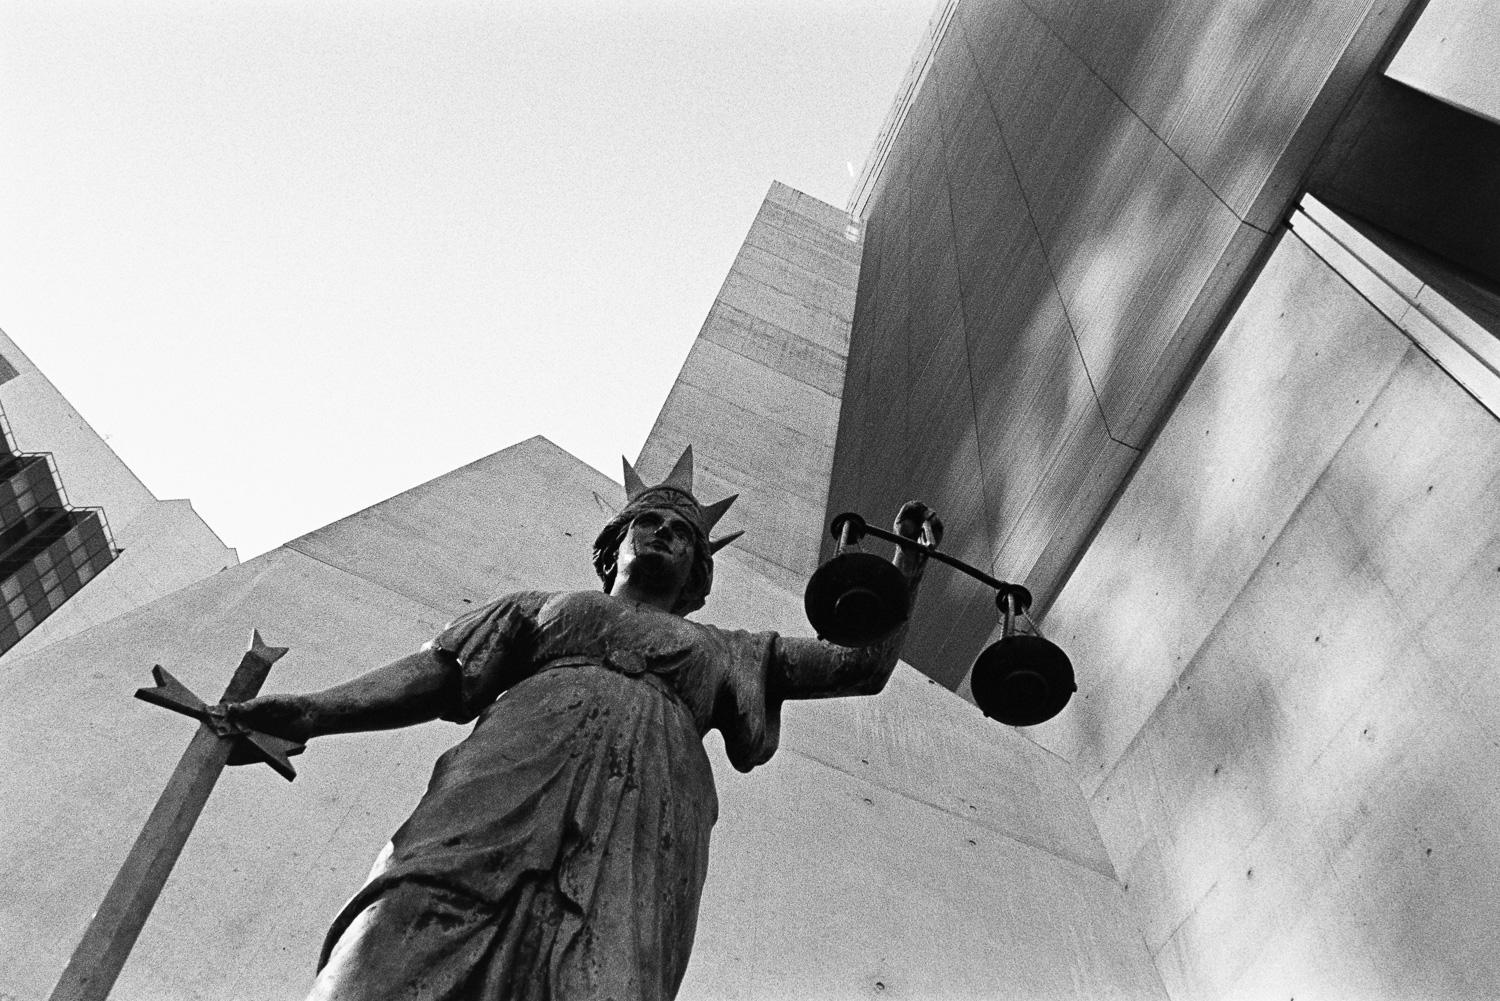 The old scales of justice…